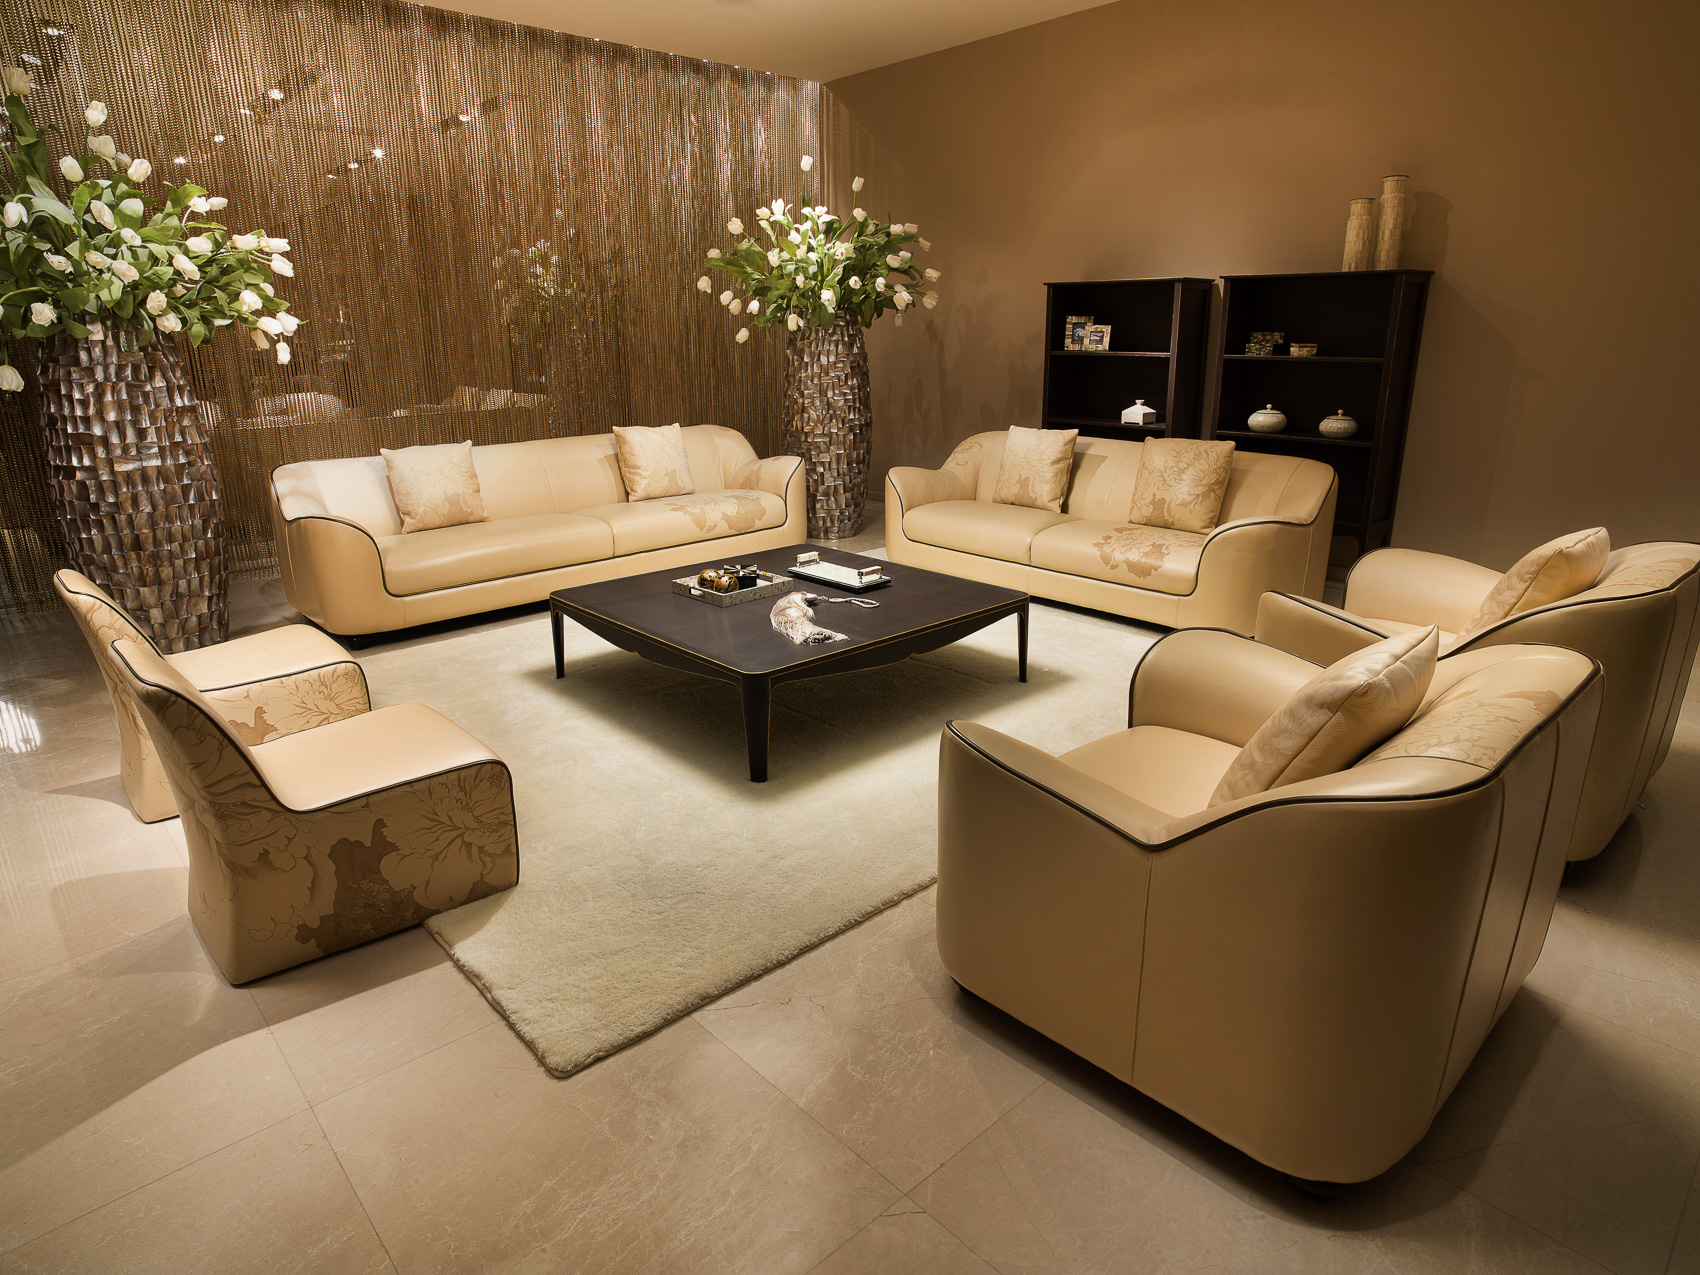 20120907_Product_Bonliving-Furniture_F-20.jpg